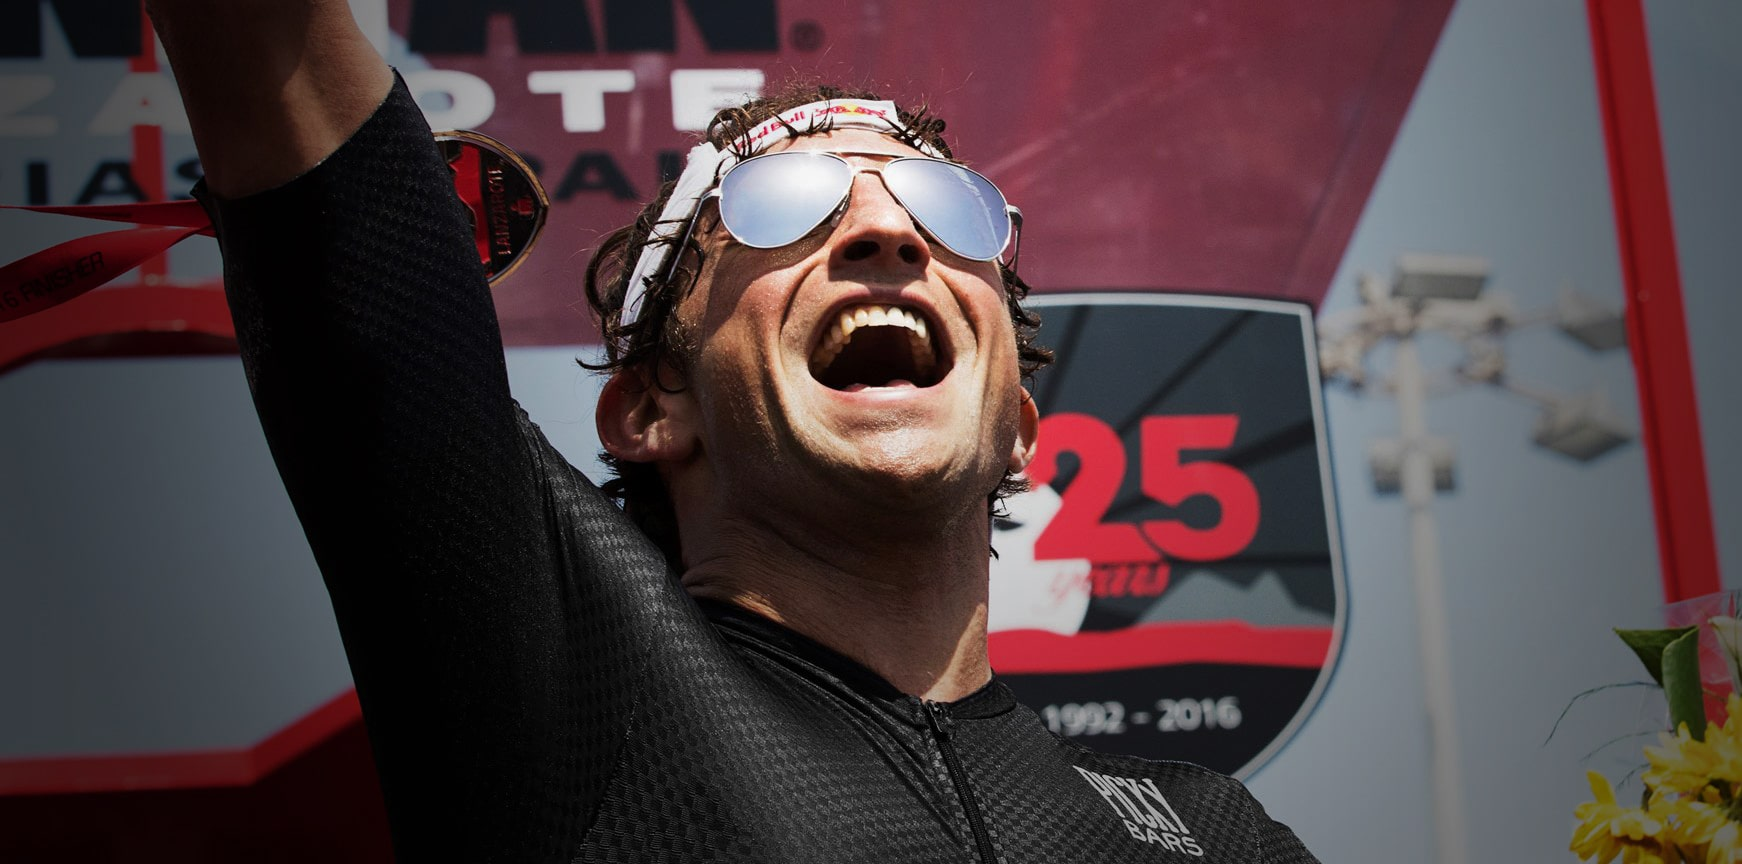 Ironman Champion Jesse Thomas wearing silver phantom aviators